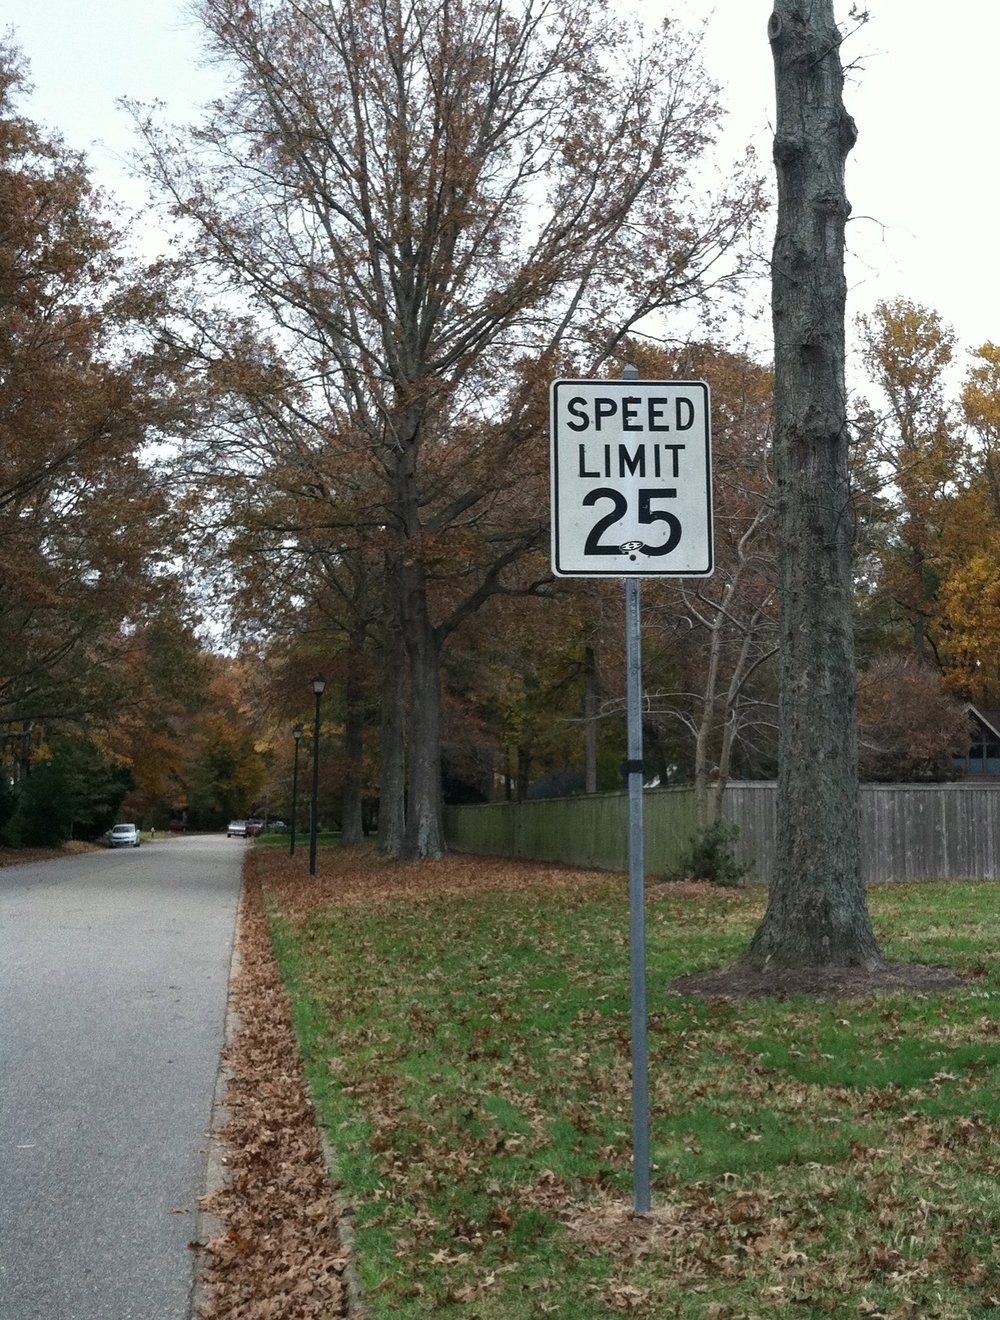 Our speed limit in Lago Mar is a MAXIMUM of 25 mph.  Please slow down and yield to pedestrians.  Remember, children and pets are unpredictable.  Your care and attention makes a difference.  Thank you.